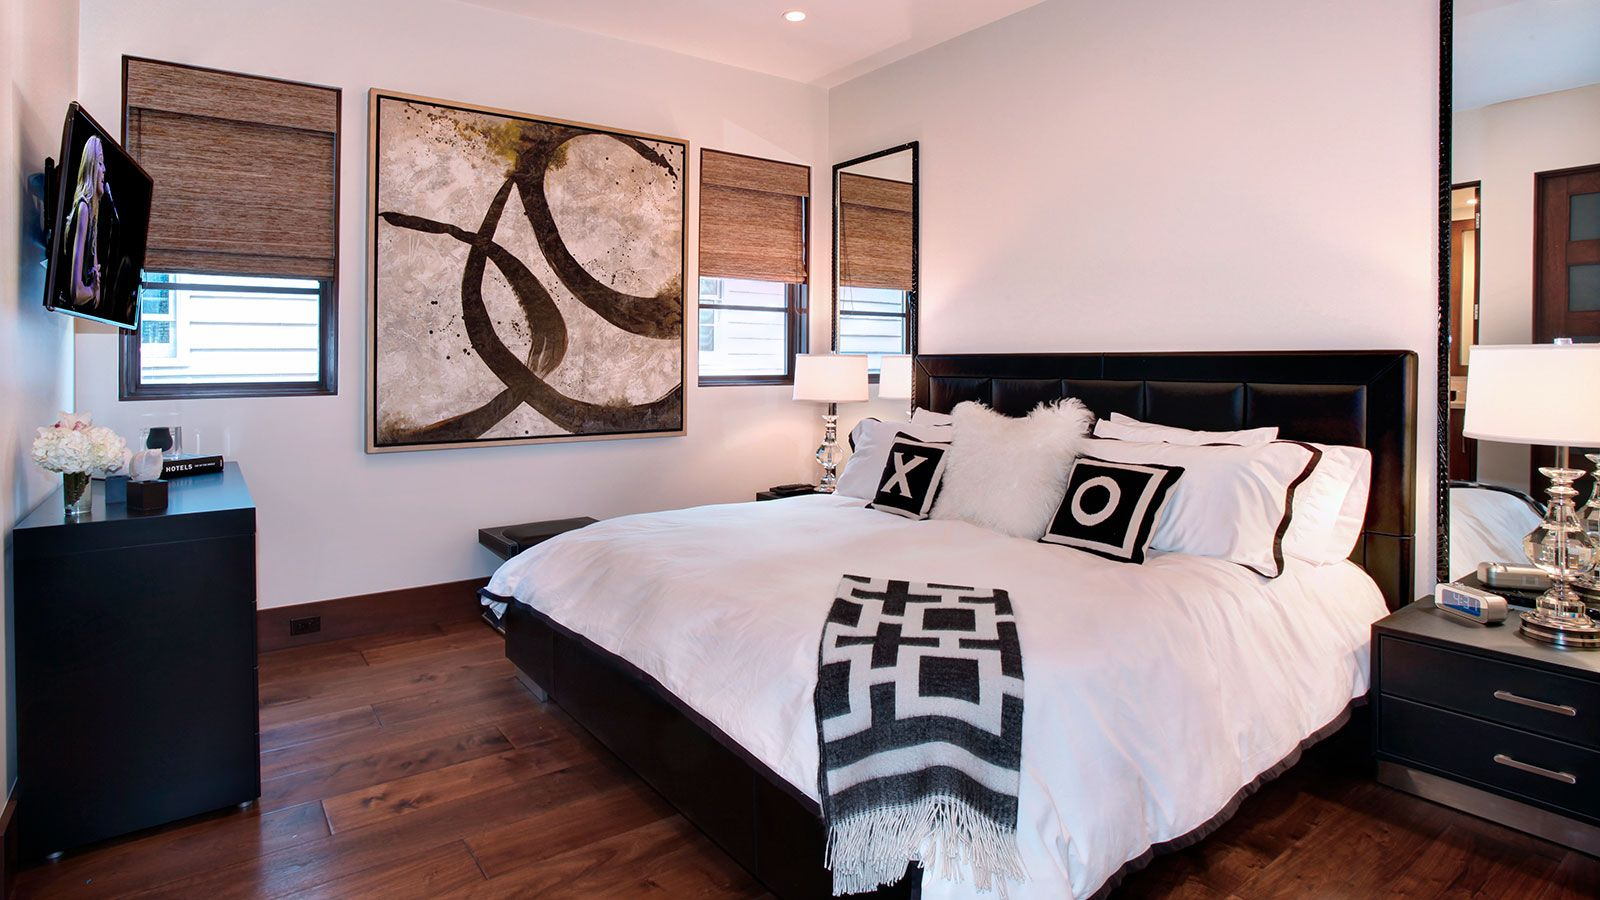 Bedroom interior design hd wallpaper chaisson project  cantoni  pinterest  roof top corona and spa